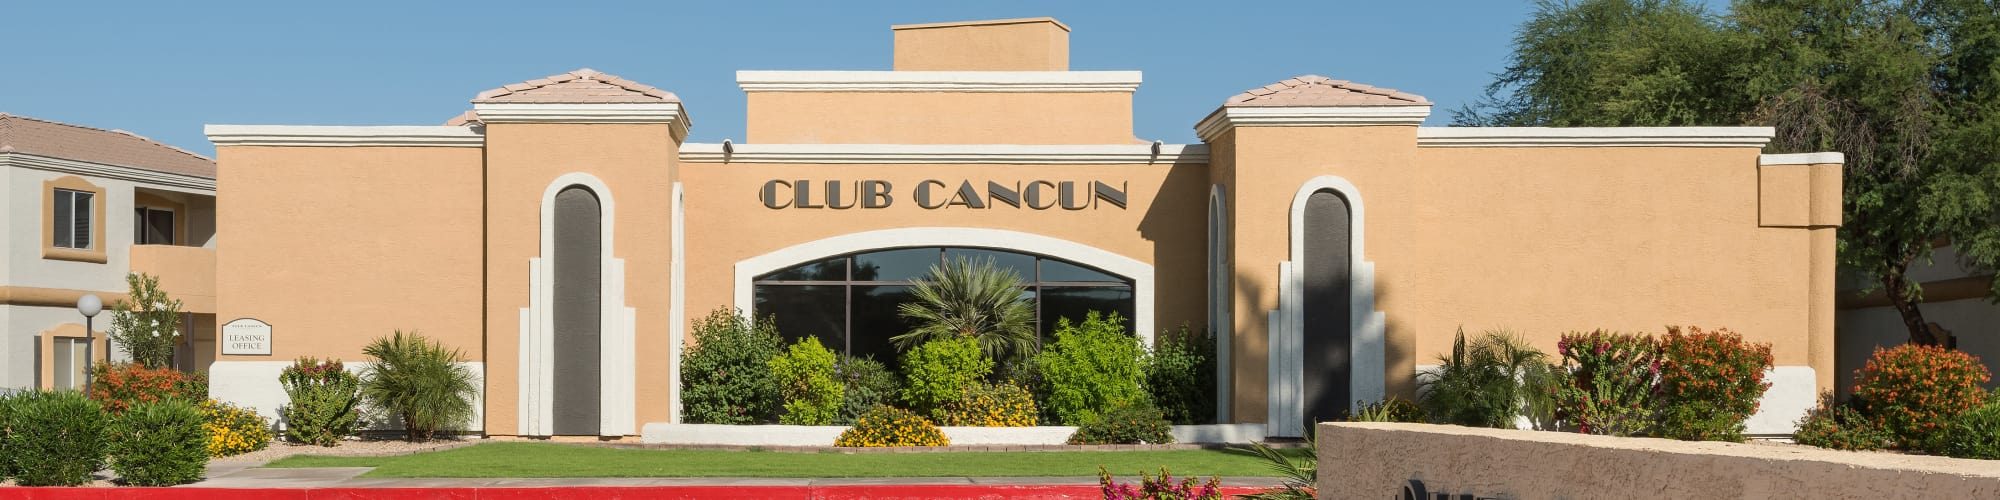 Apply to live at Club Cancun in Chandler, Arizona